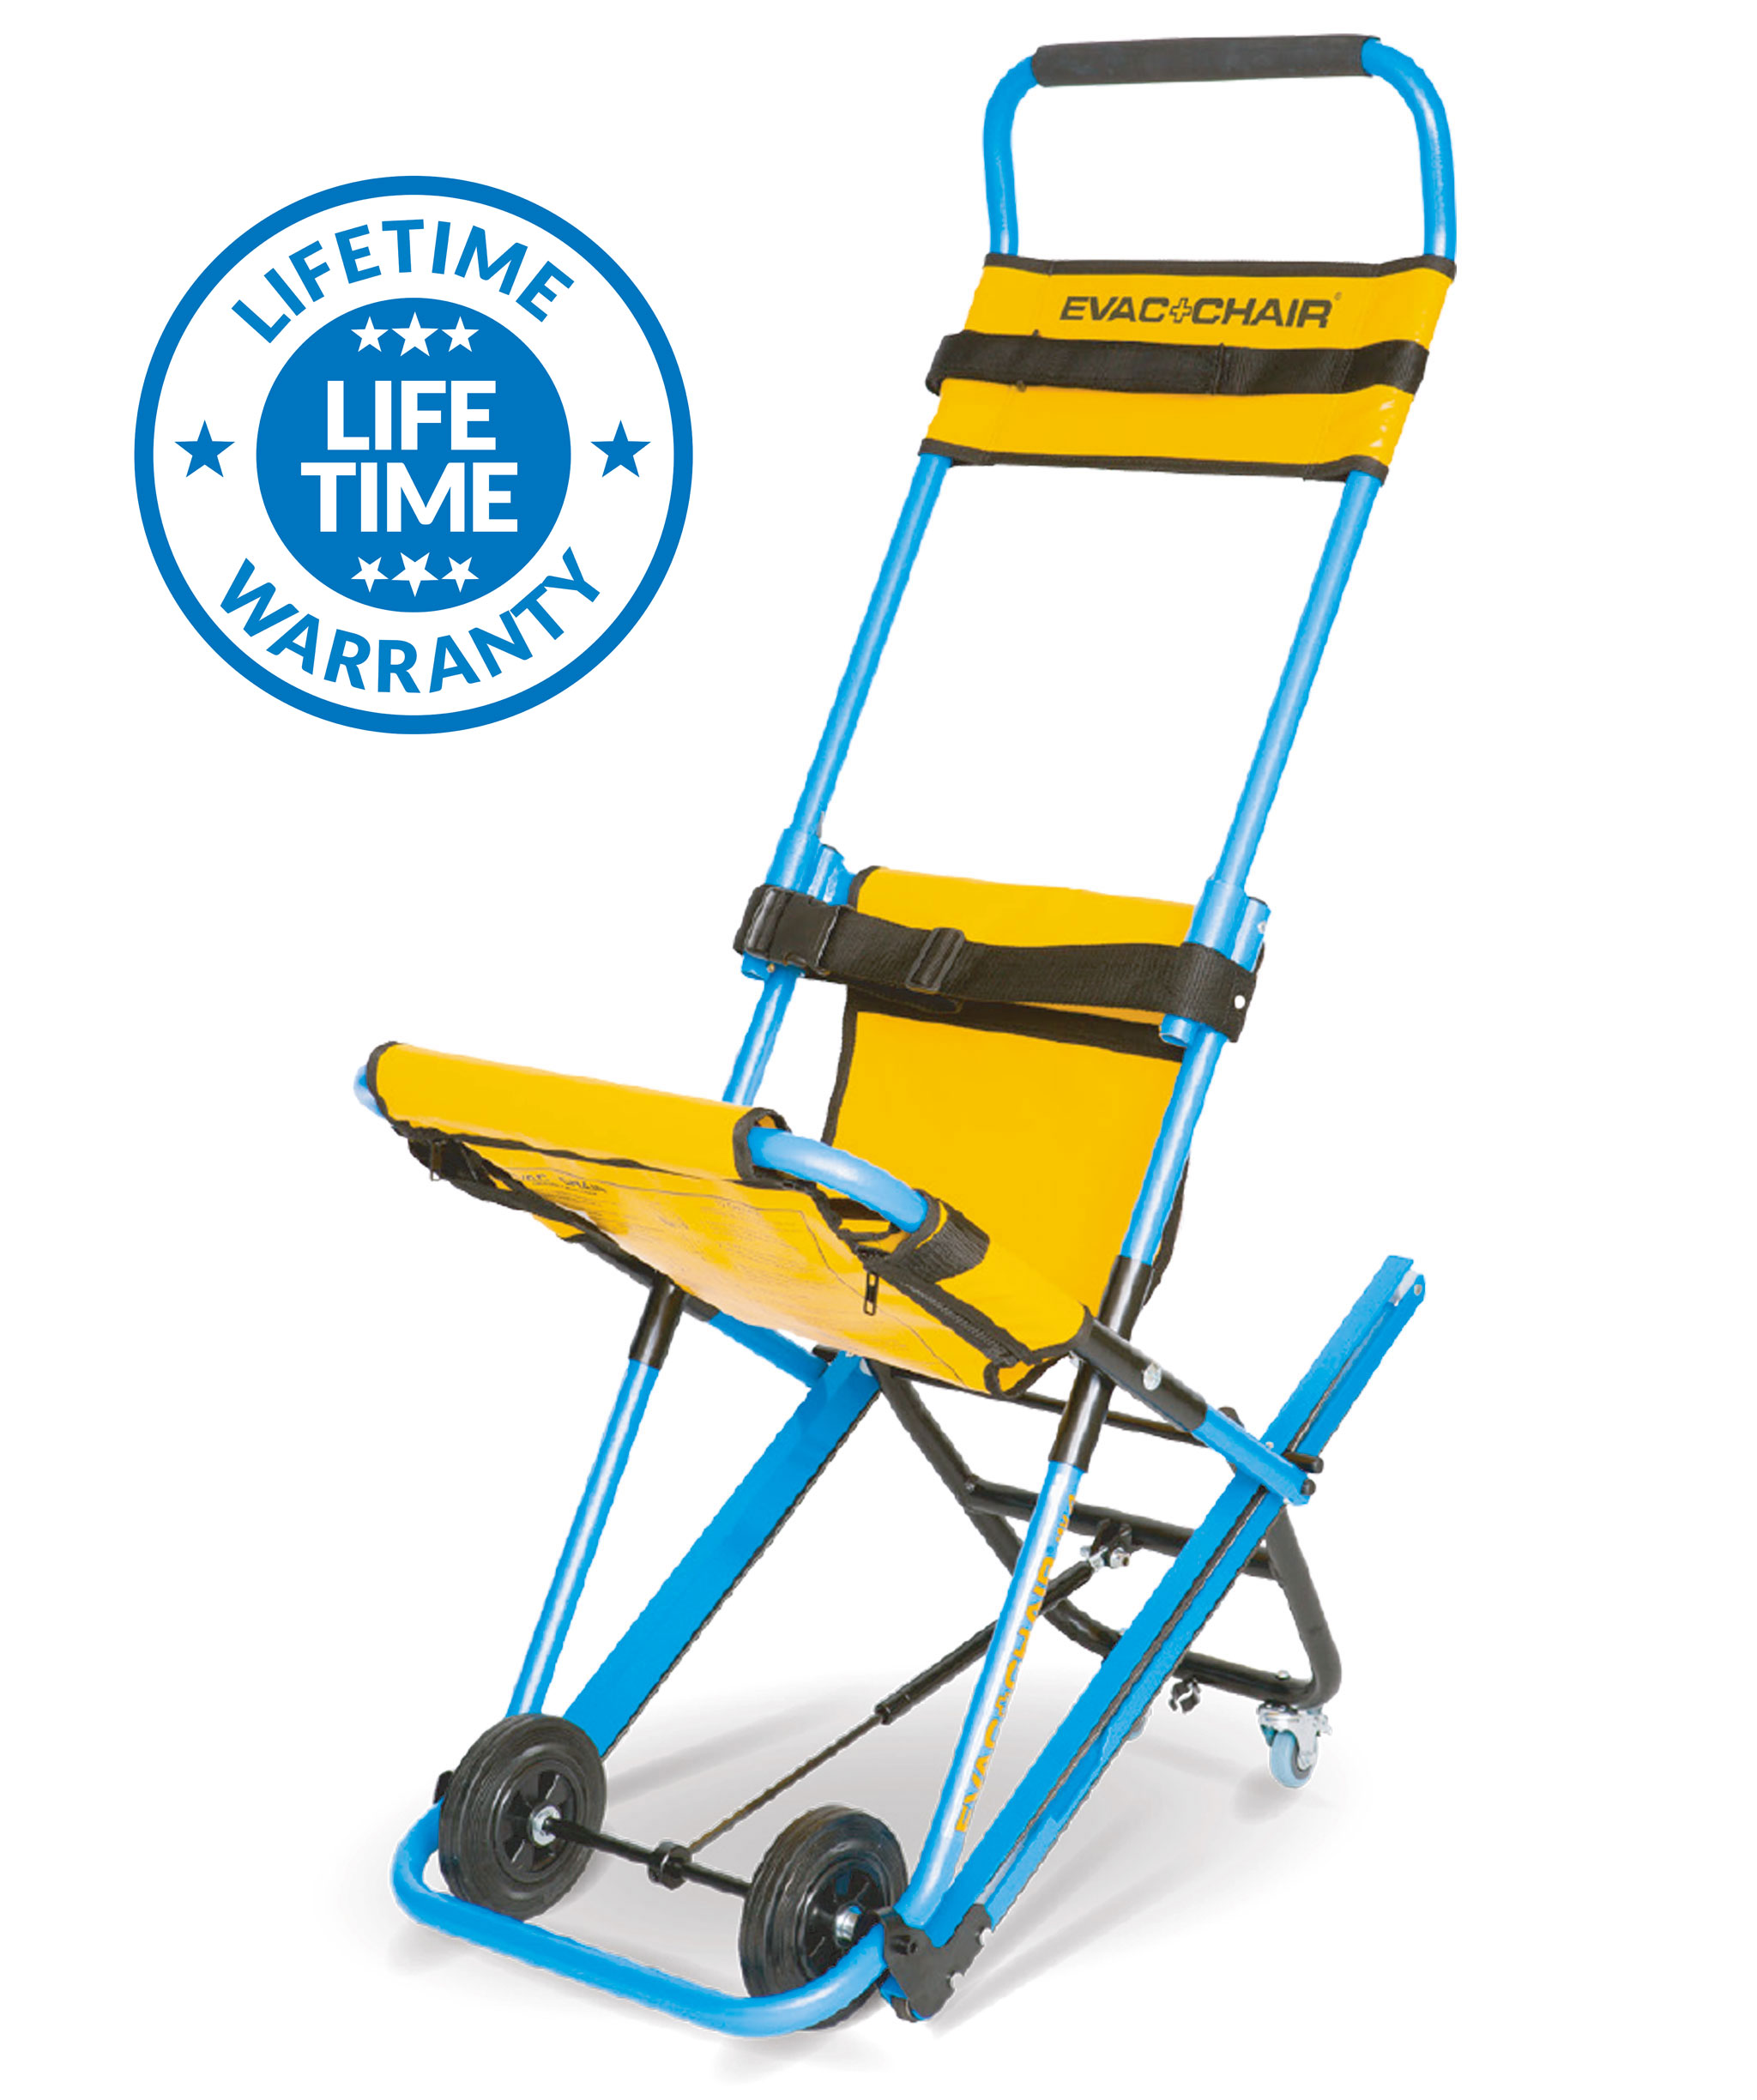 Evac+Chair-300H-Evacuation Chair